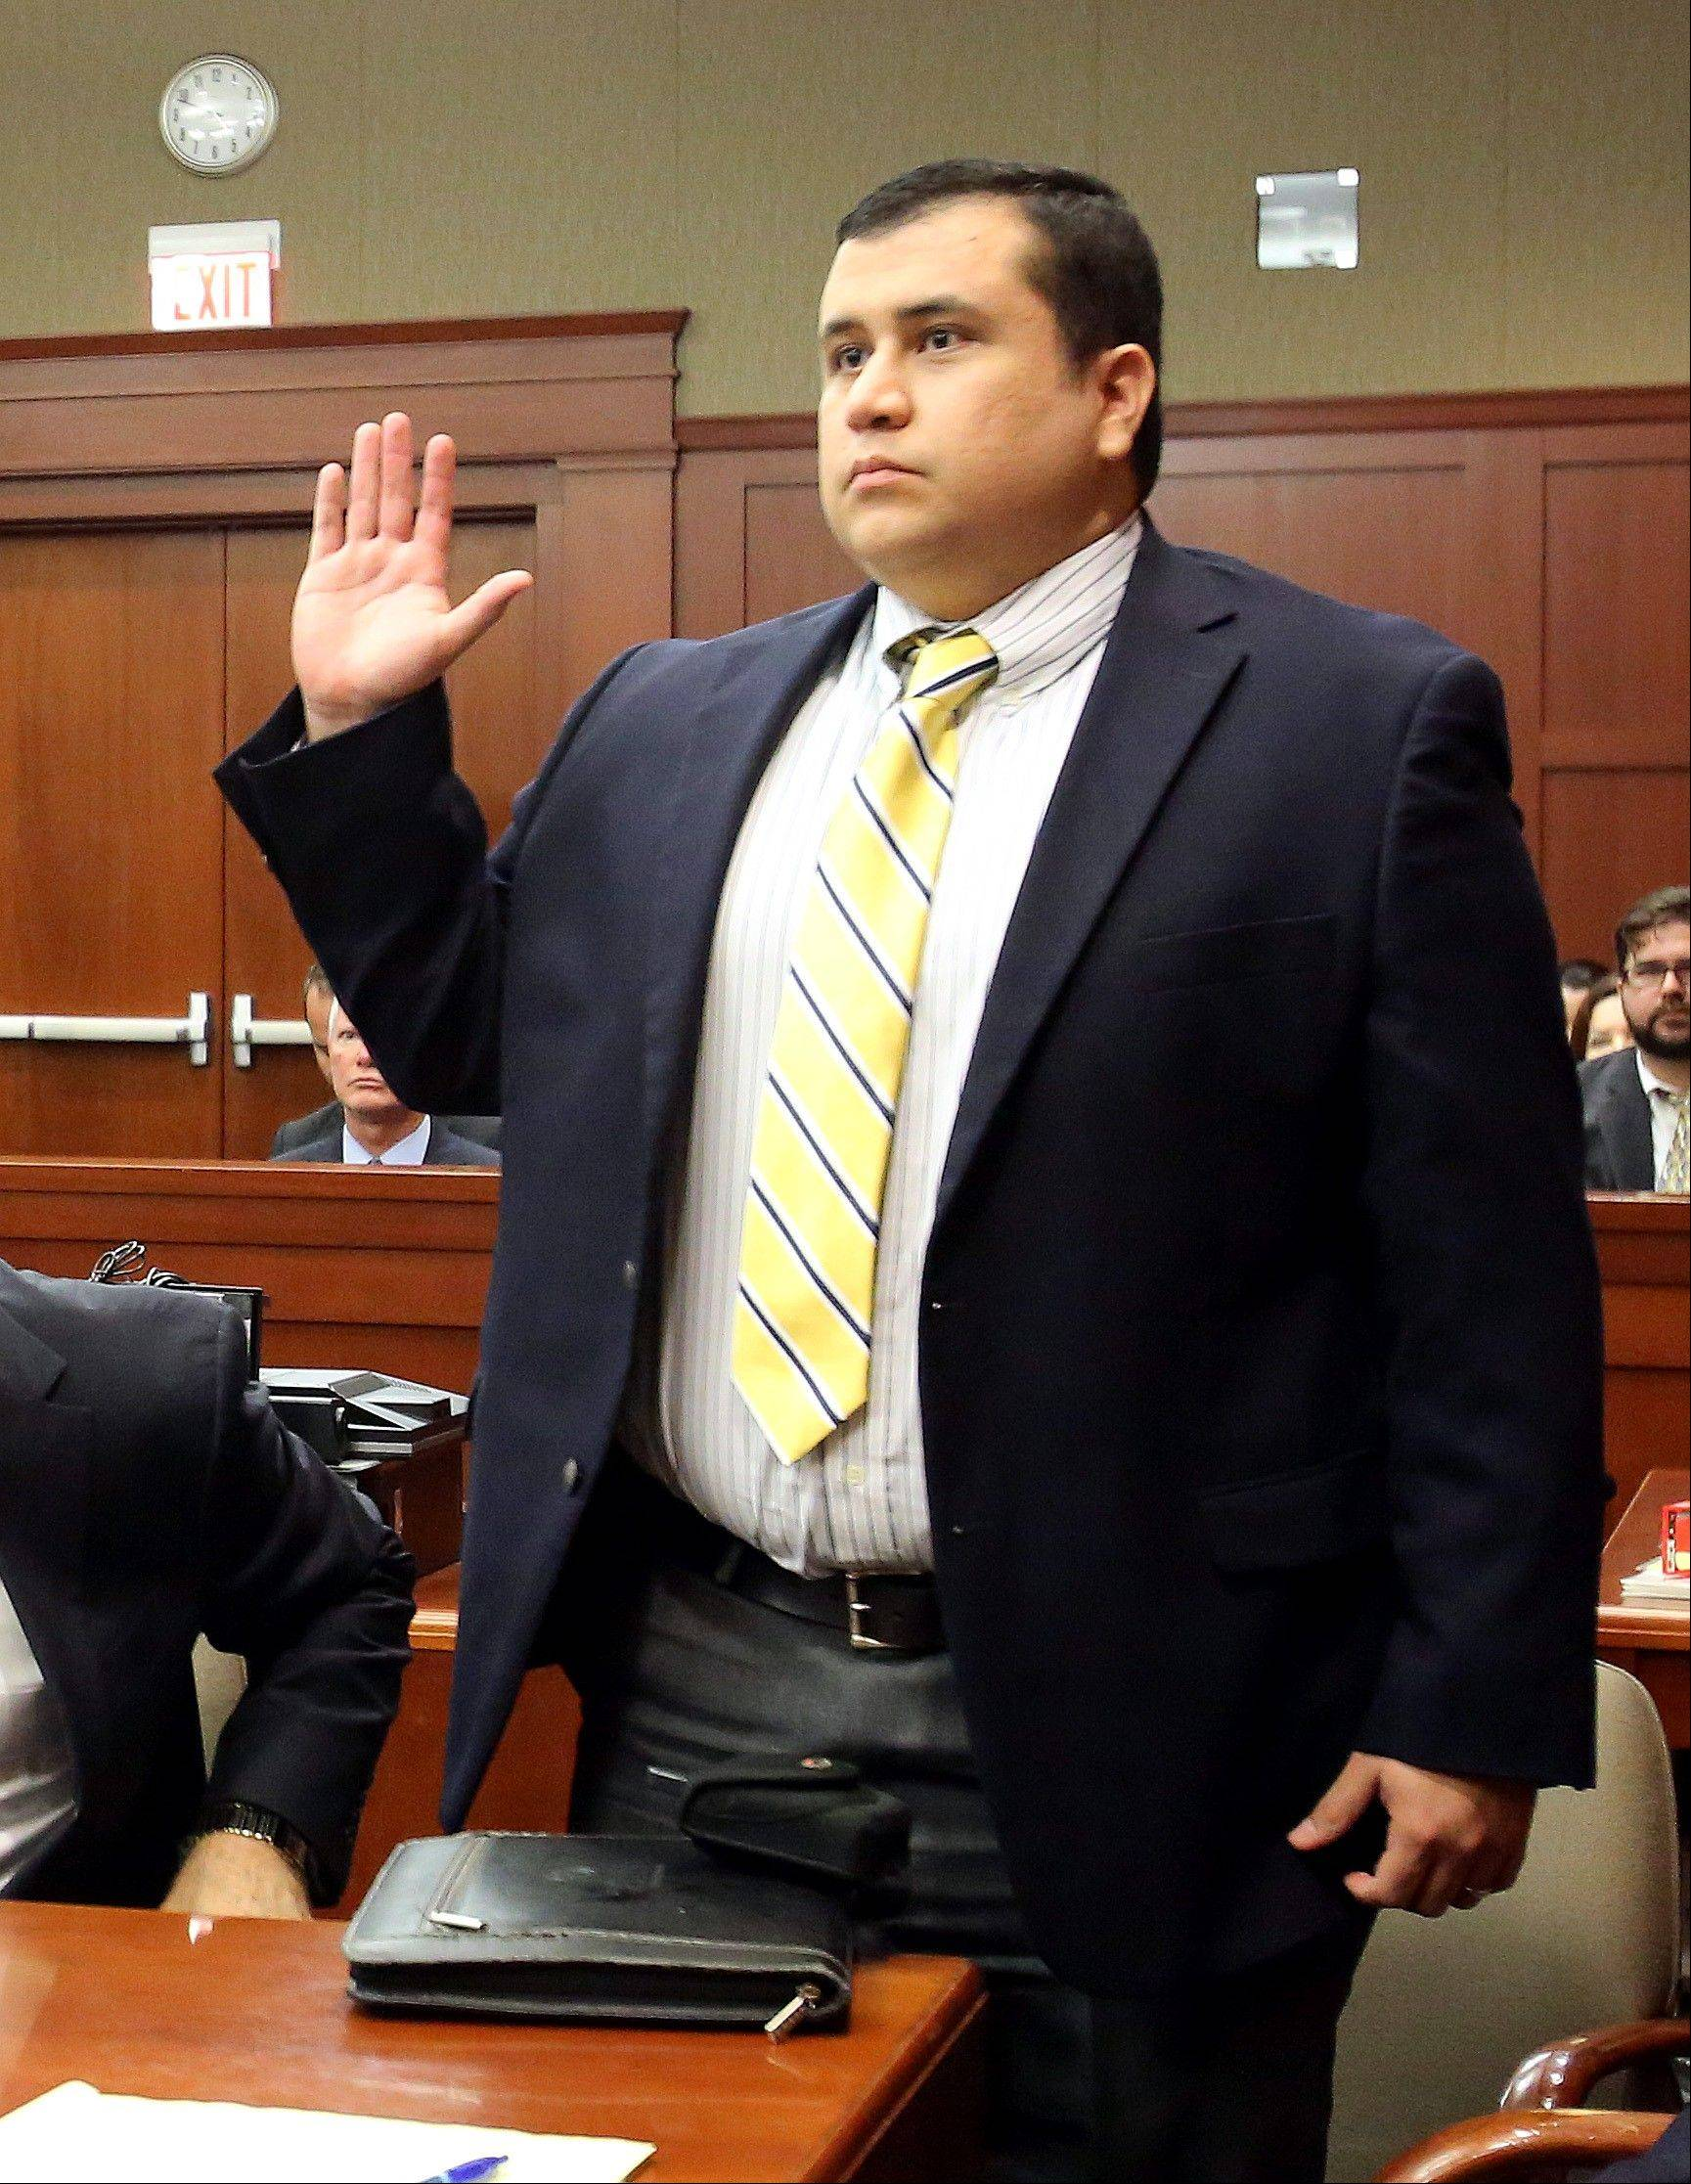 In this April 30, 2013, file photo, defendant George Zimmerman is sworn in for testimony in Seminole circuit court, in Sanford, Fla., during a pre-trial hearing. The jury cleared Zimmerman of all charges on Saturday, July 13, 2013.